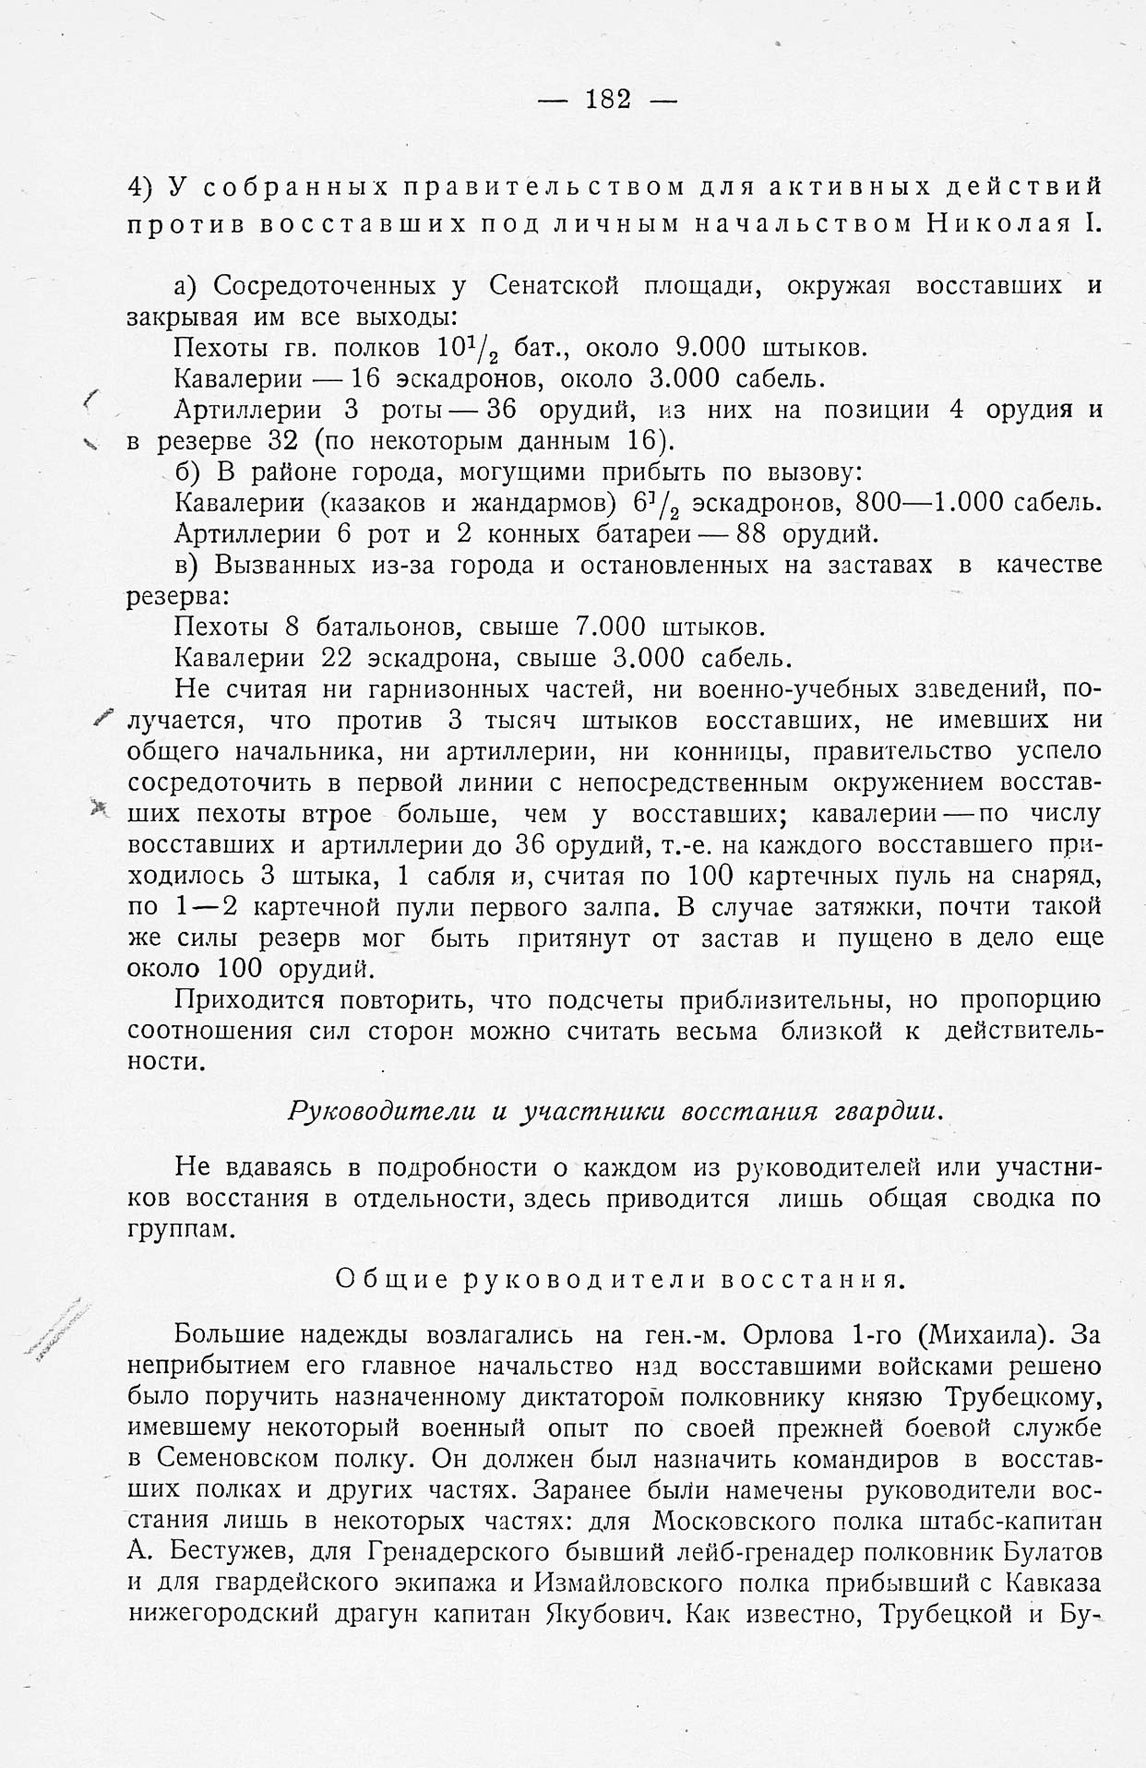 http://elib.shpl.ru/pages/566079/zooms/7